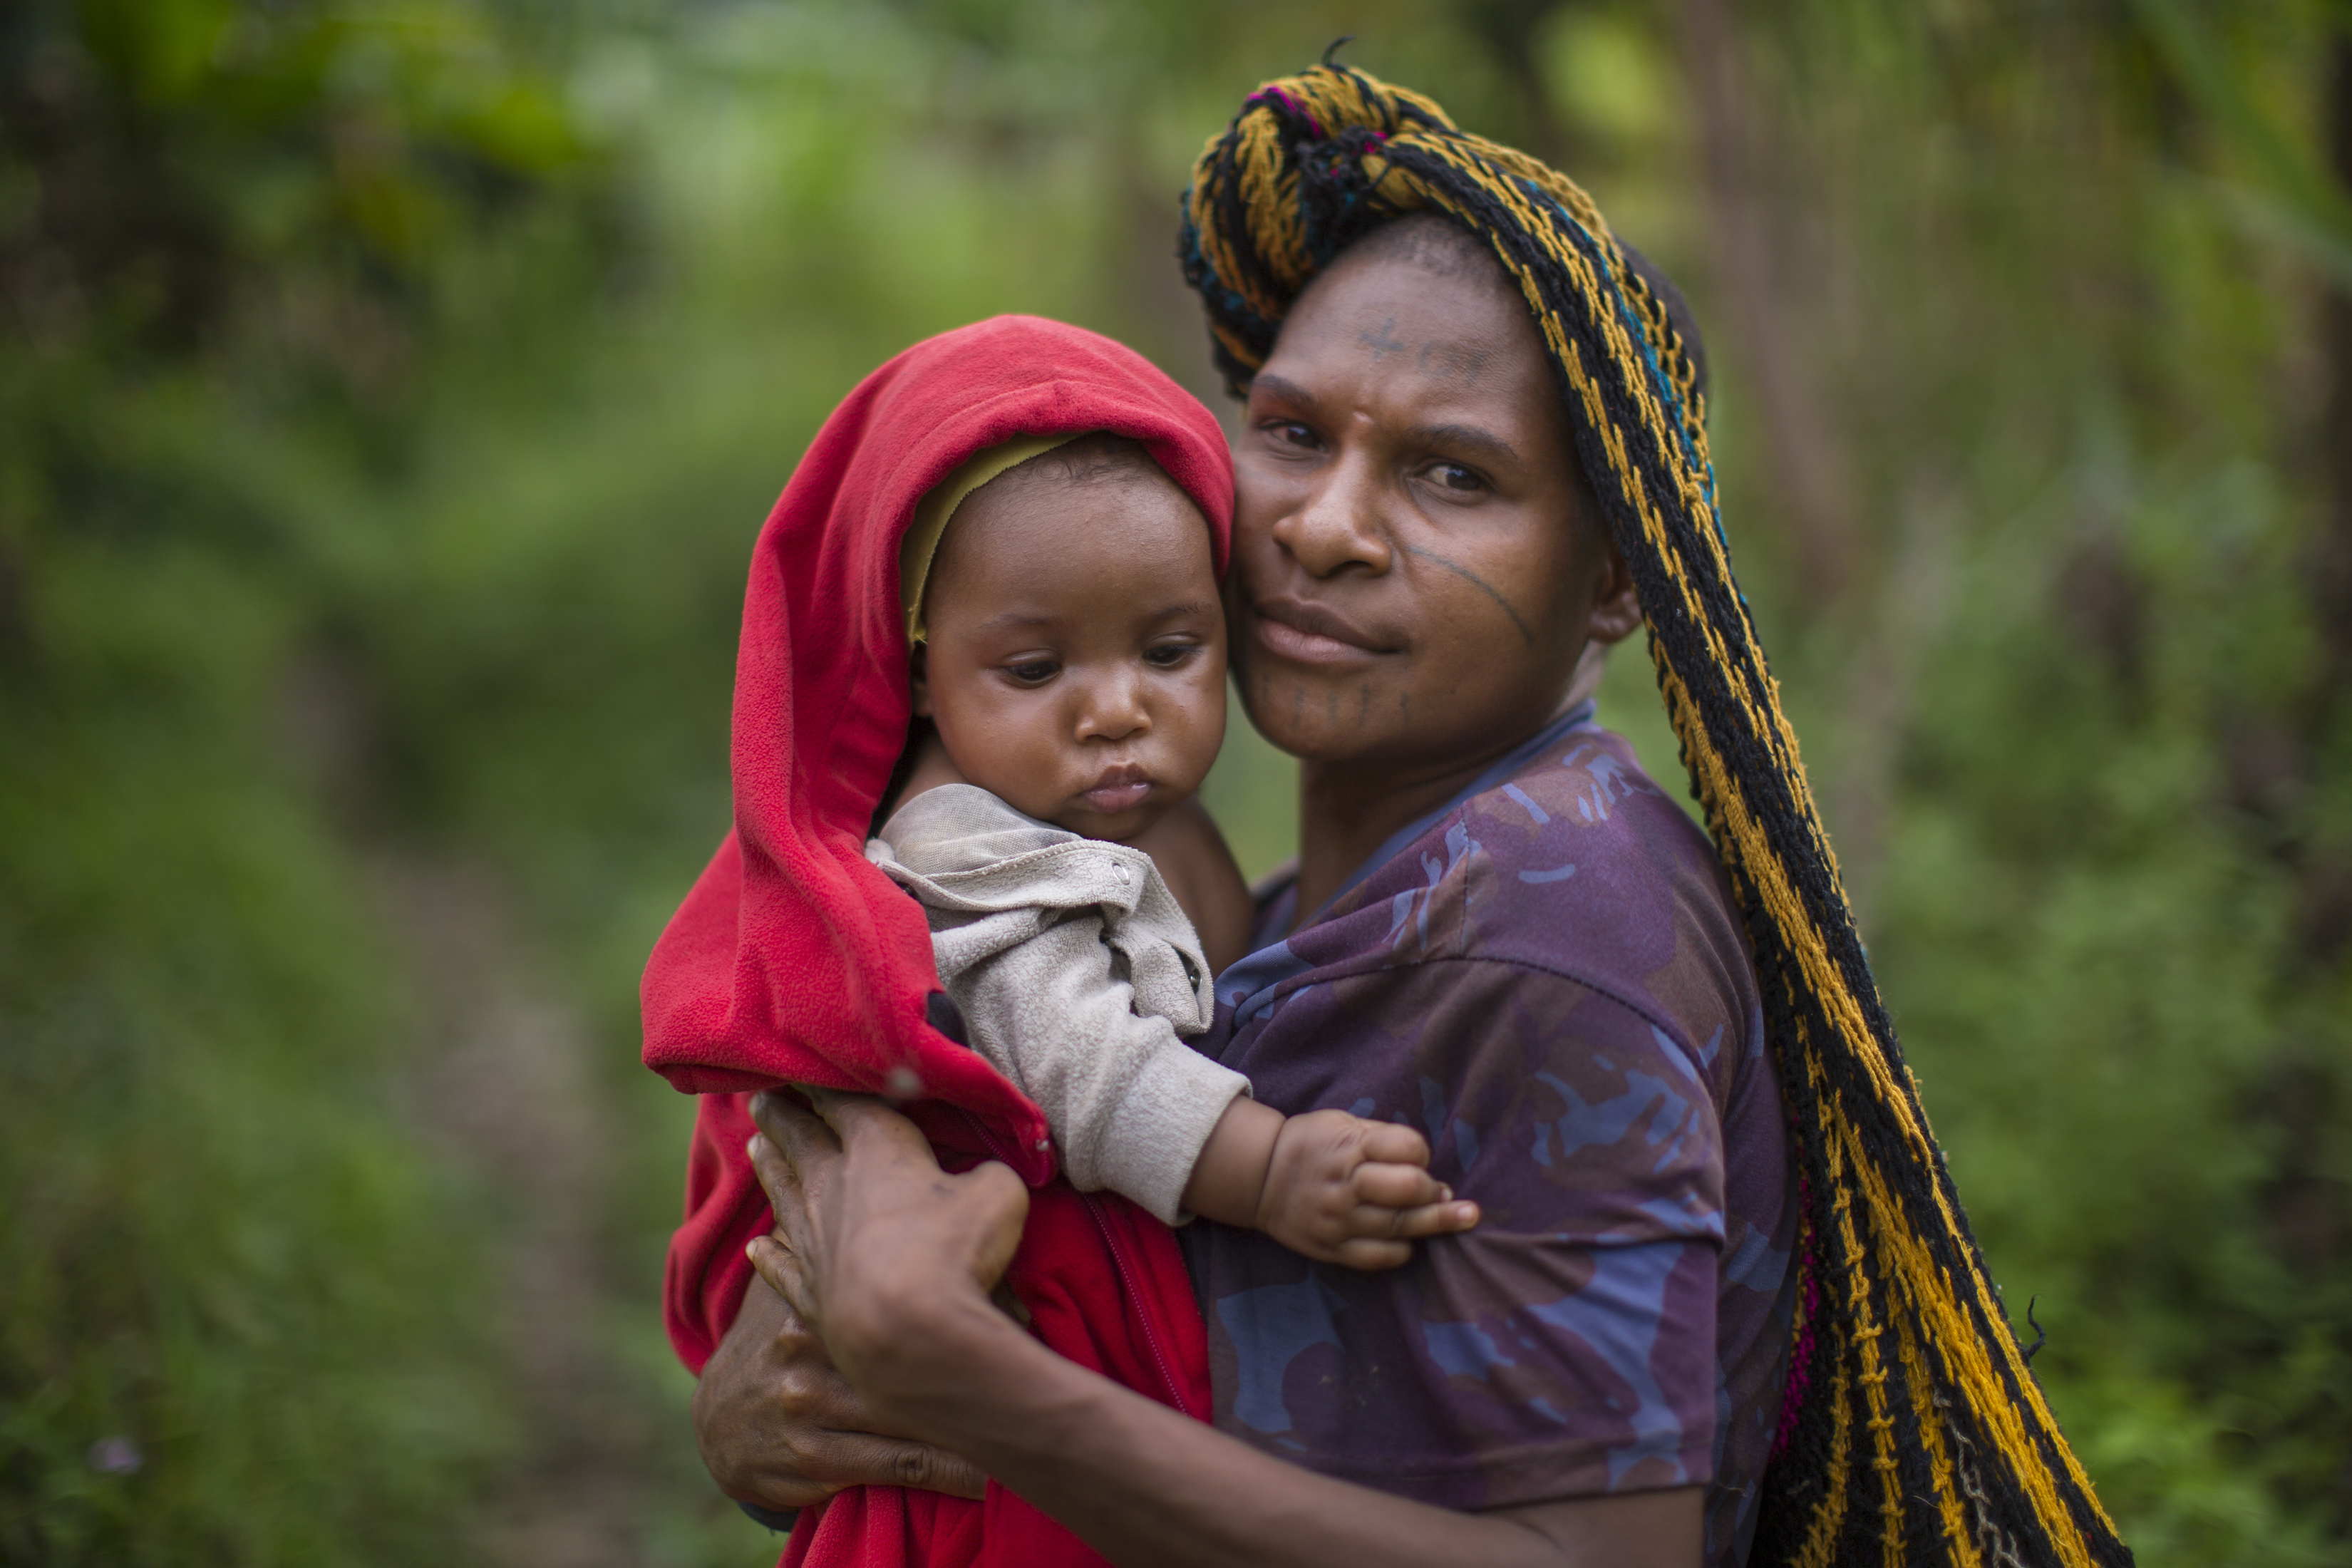 After the medical team left, women from outlying villages came to Yifki to ask Susan Kopf more questions about safe childbirth and infant care. Christ-centered medical care and education has brought new hope to the Hewa people.